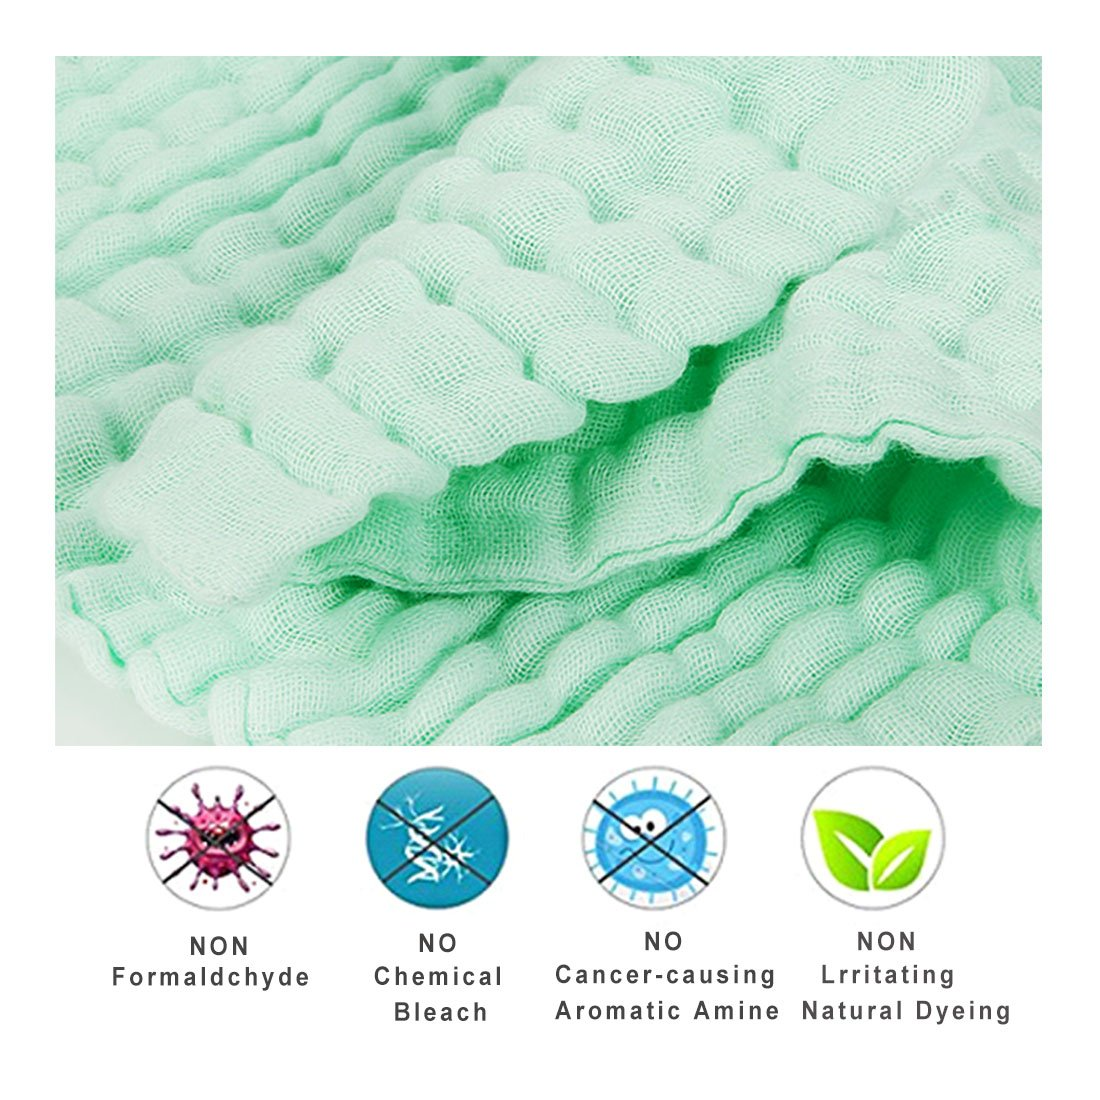 Kyapoo Baby Muslin Washcloths and Towels Premium Extra Soft Newborn Baby Face Towel Baby Registry as Shower Gift 5 Pack KYP9099